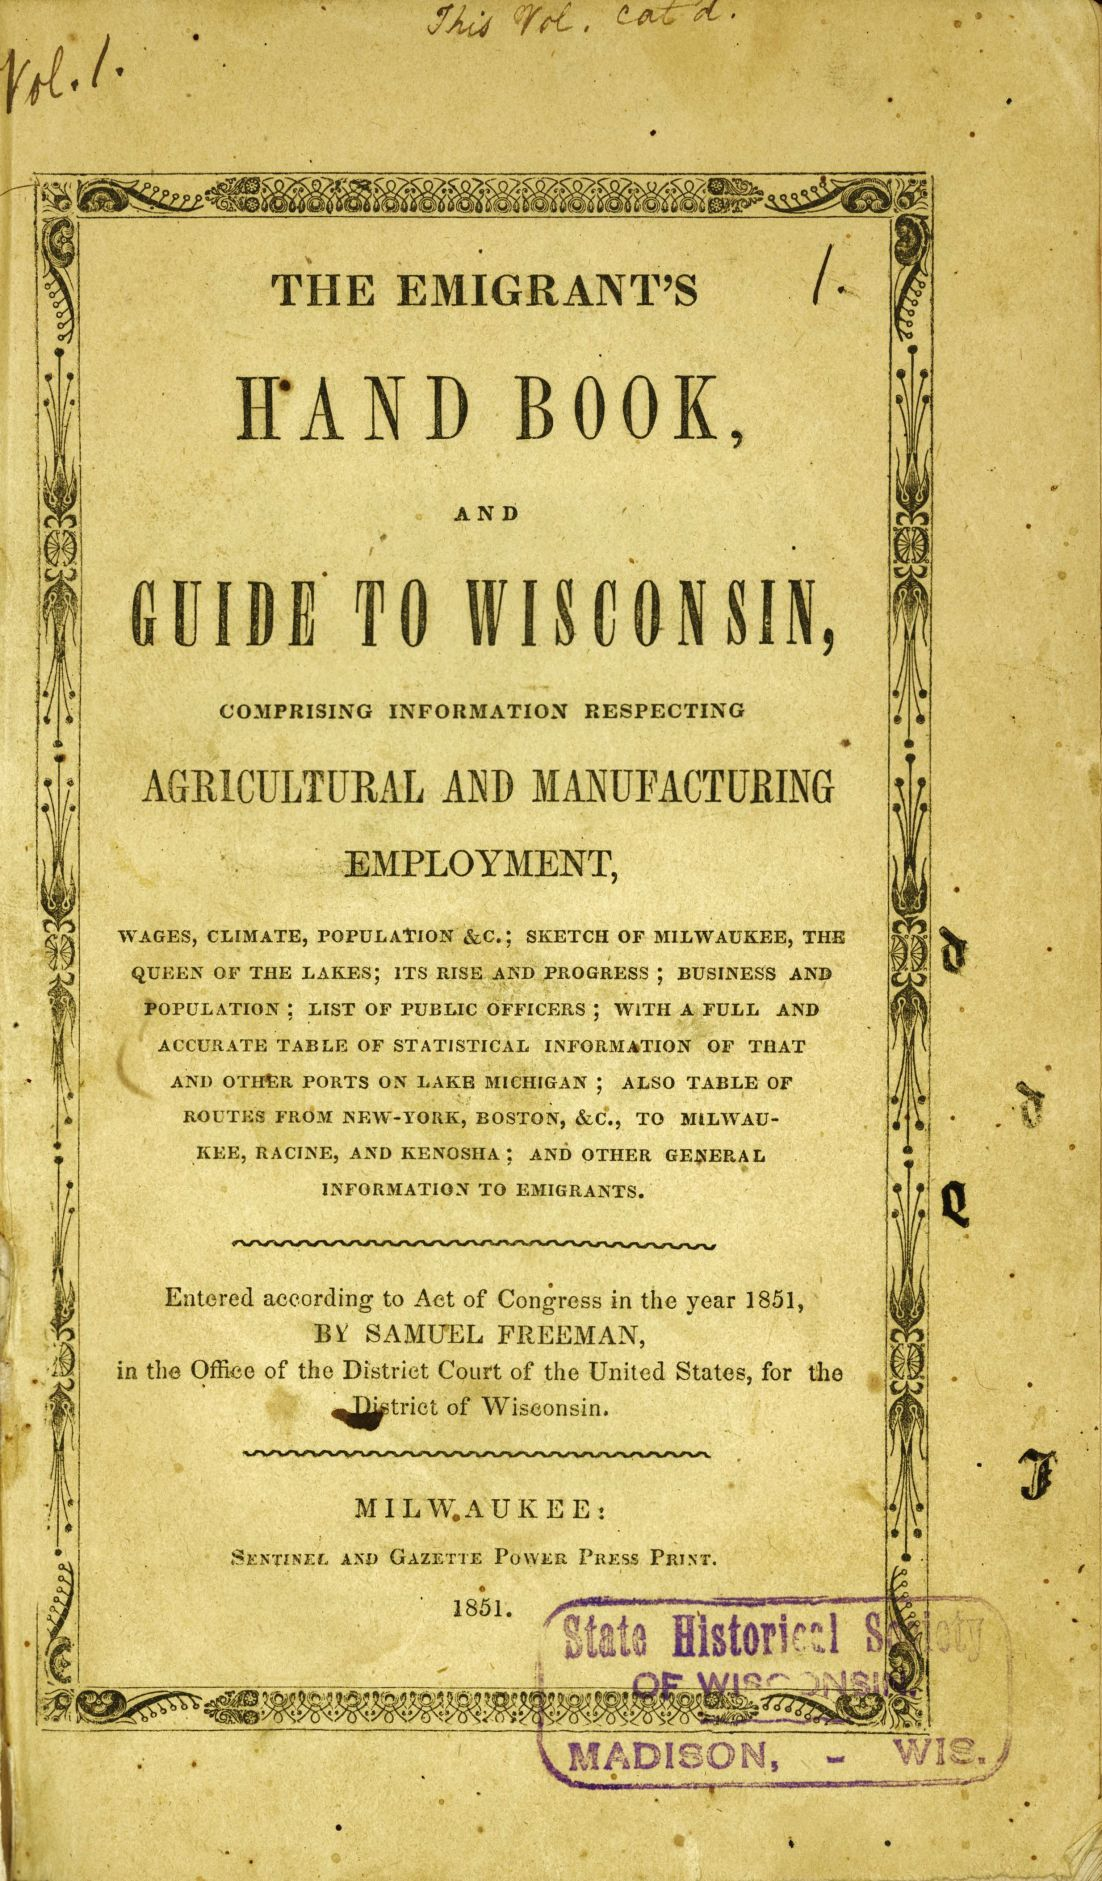 Emigrant's Hand Book and Guide to Wisconsin